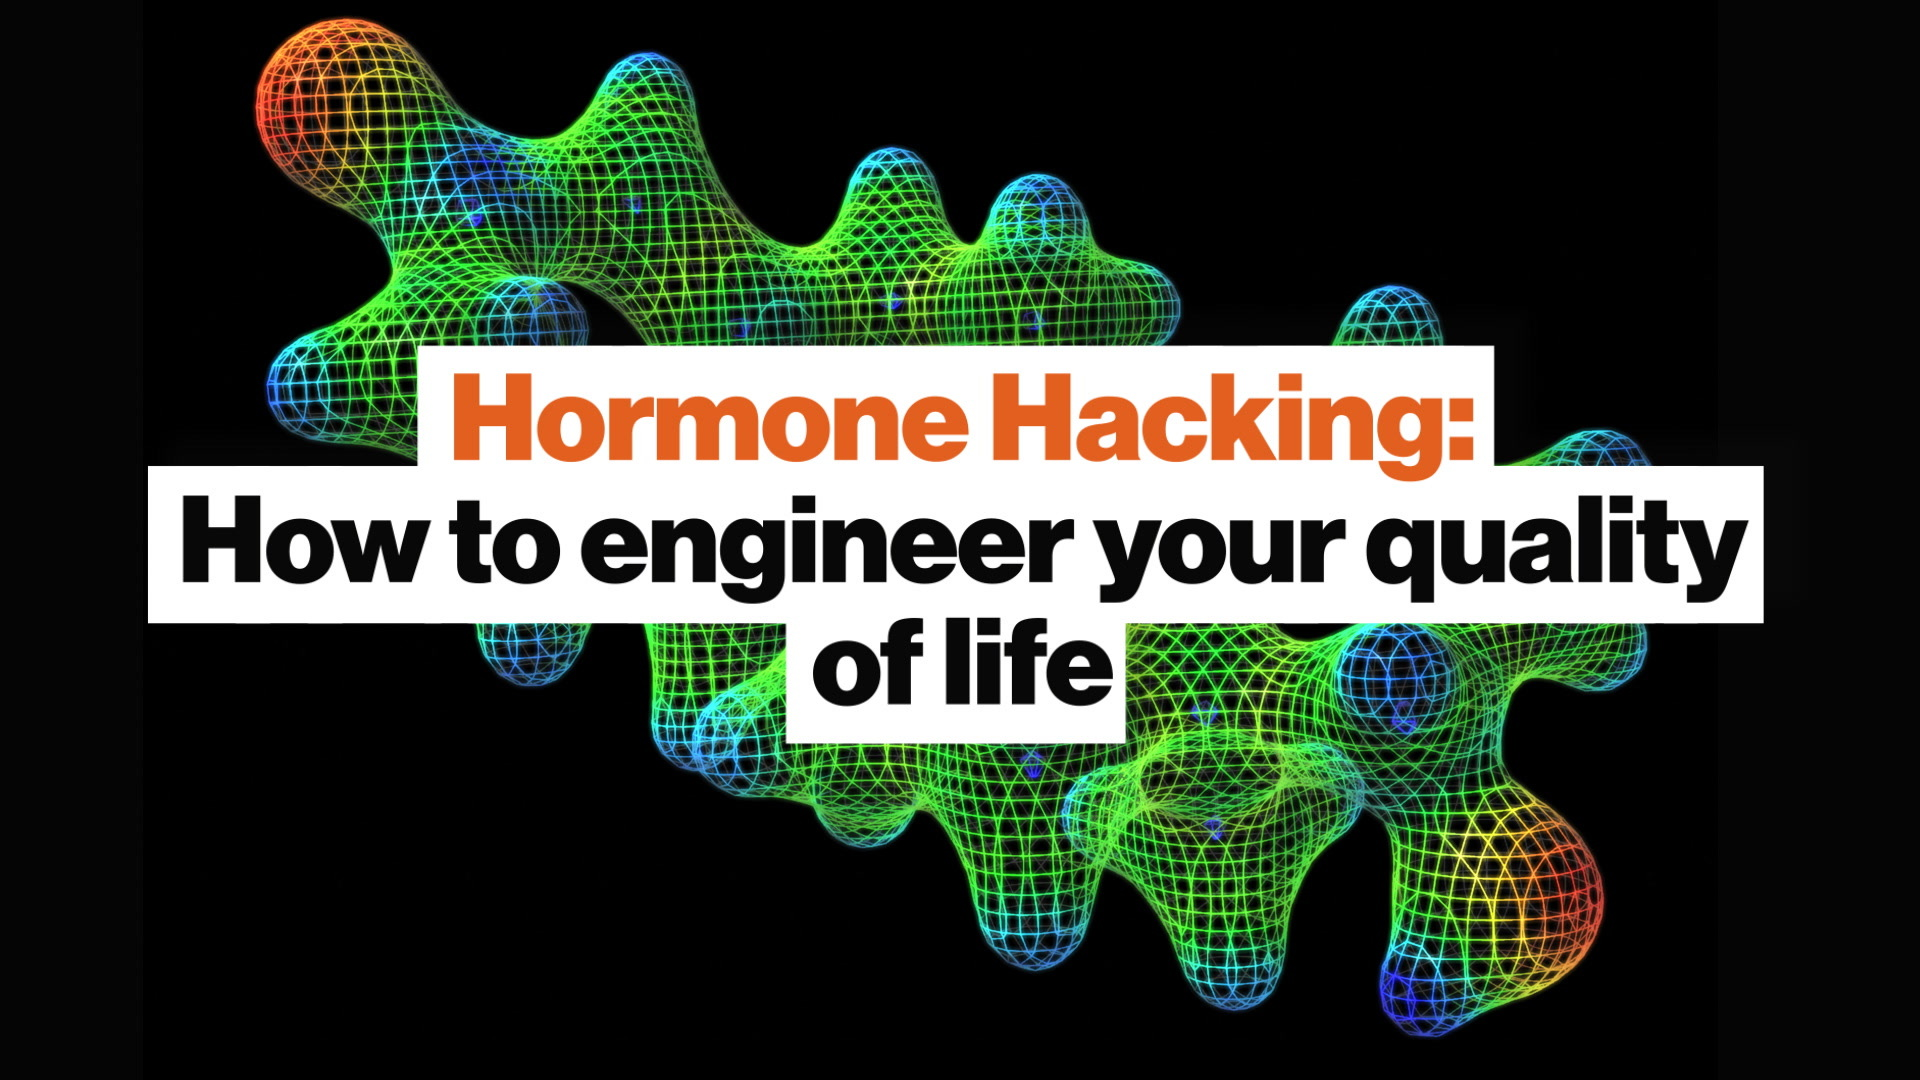 Hormone Hacking: How to engineer your quality of life